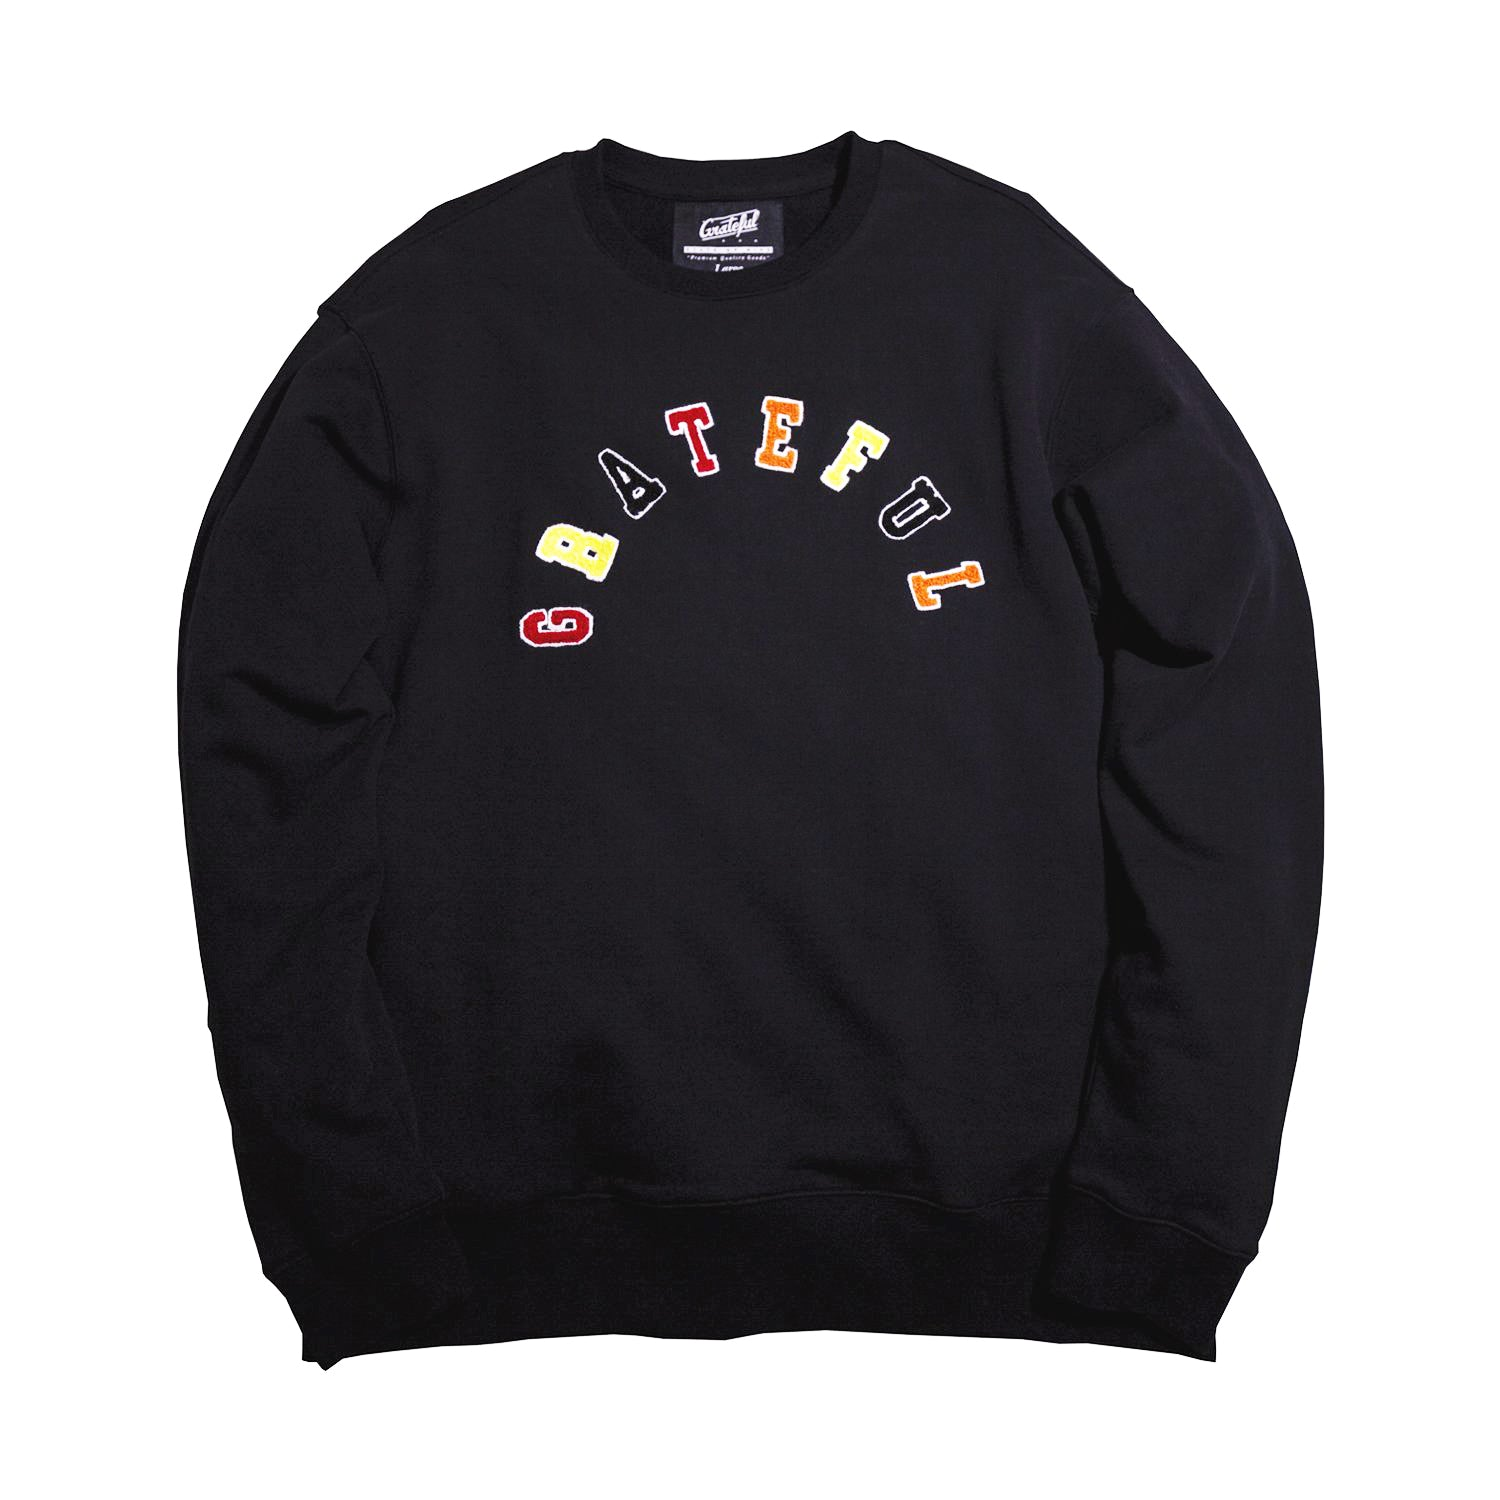 Tribeca Grateful Arched Crew Neck